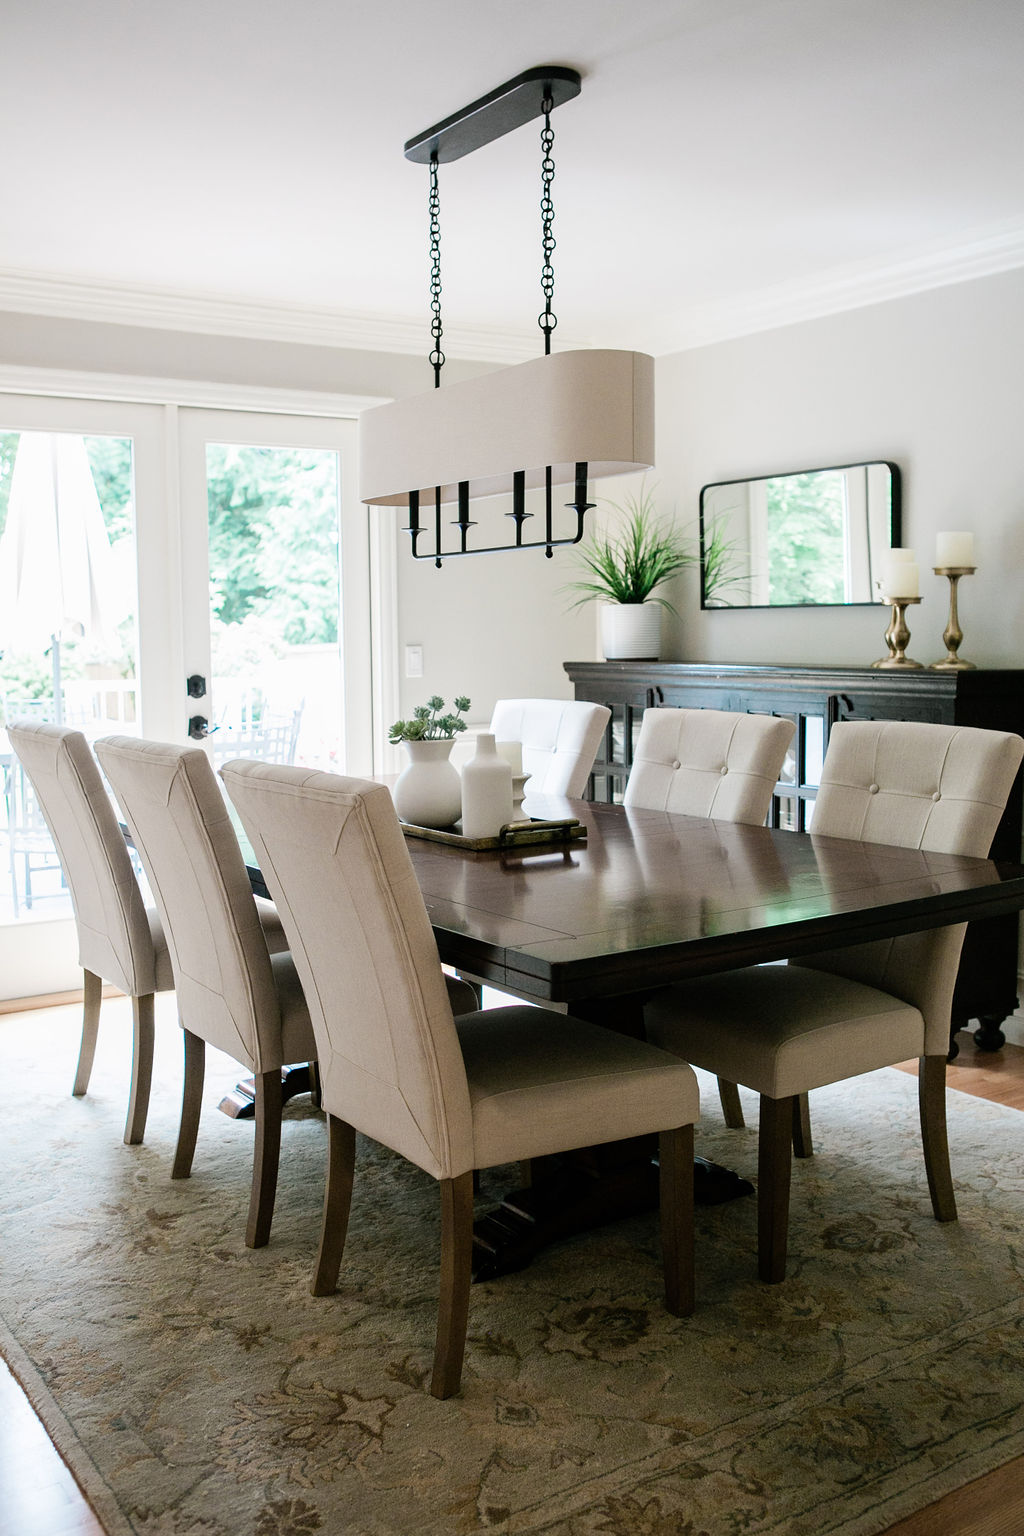 Button tufted parson style dining room chairs and a chandelier with a linen shade.